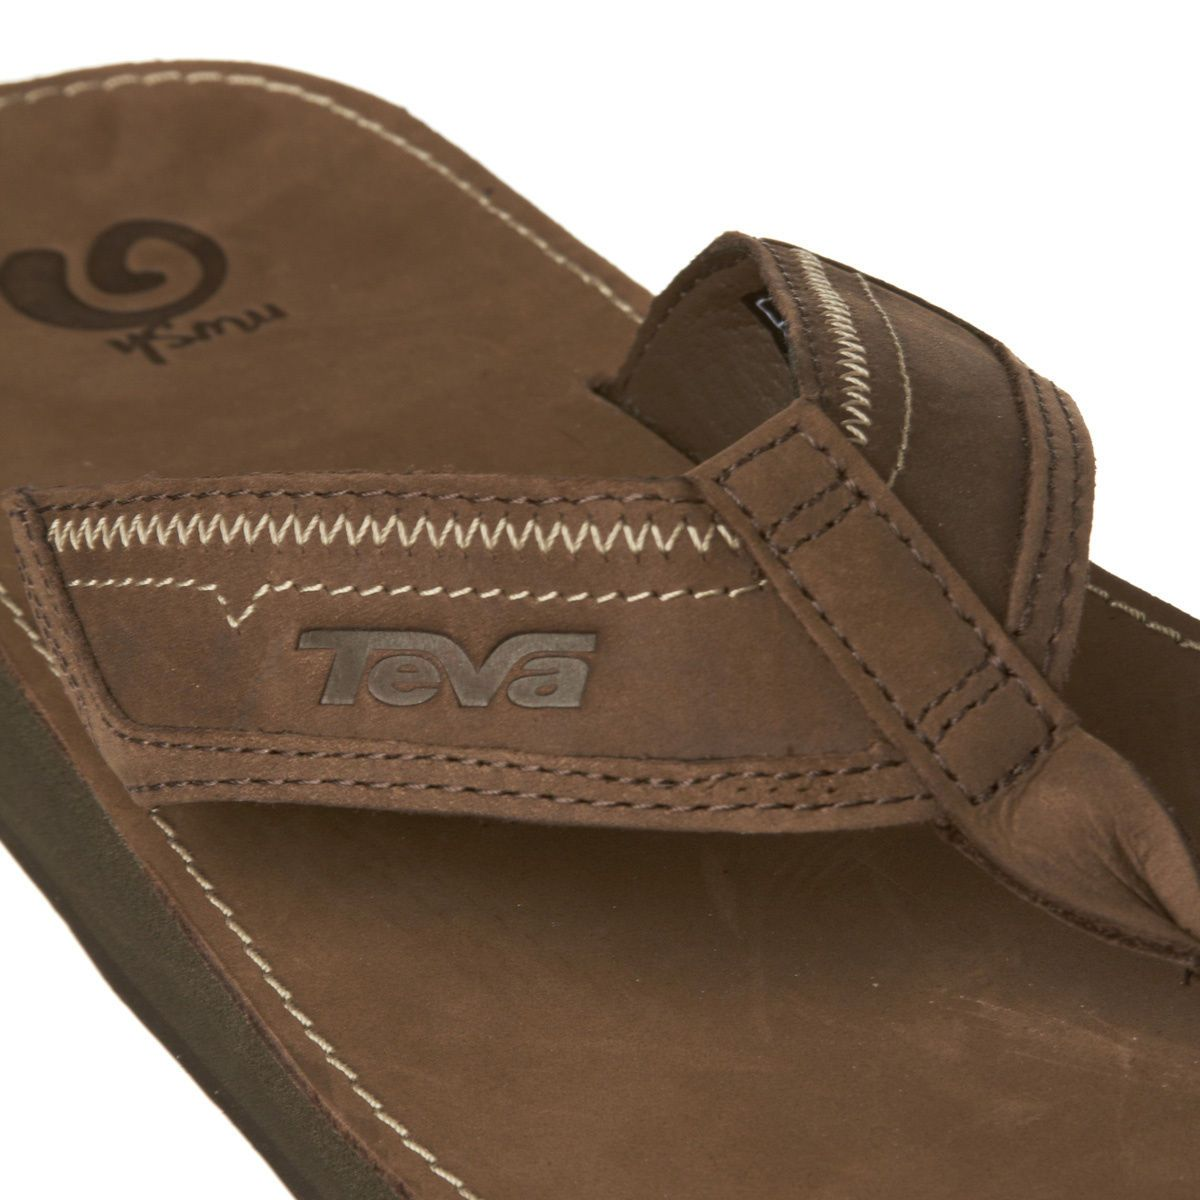 8e6490aea9a2 Teva Benson M s Leather Flip Flops - Brown